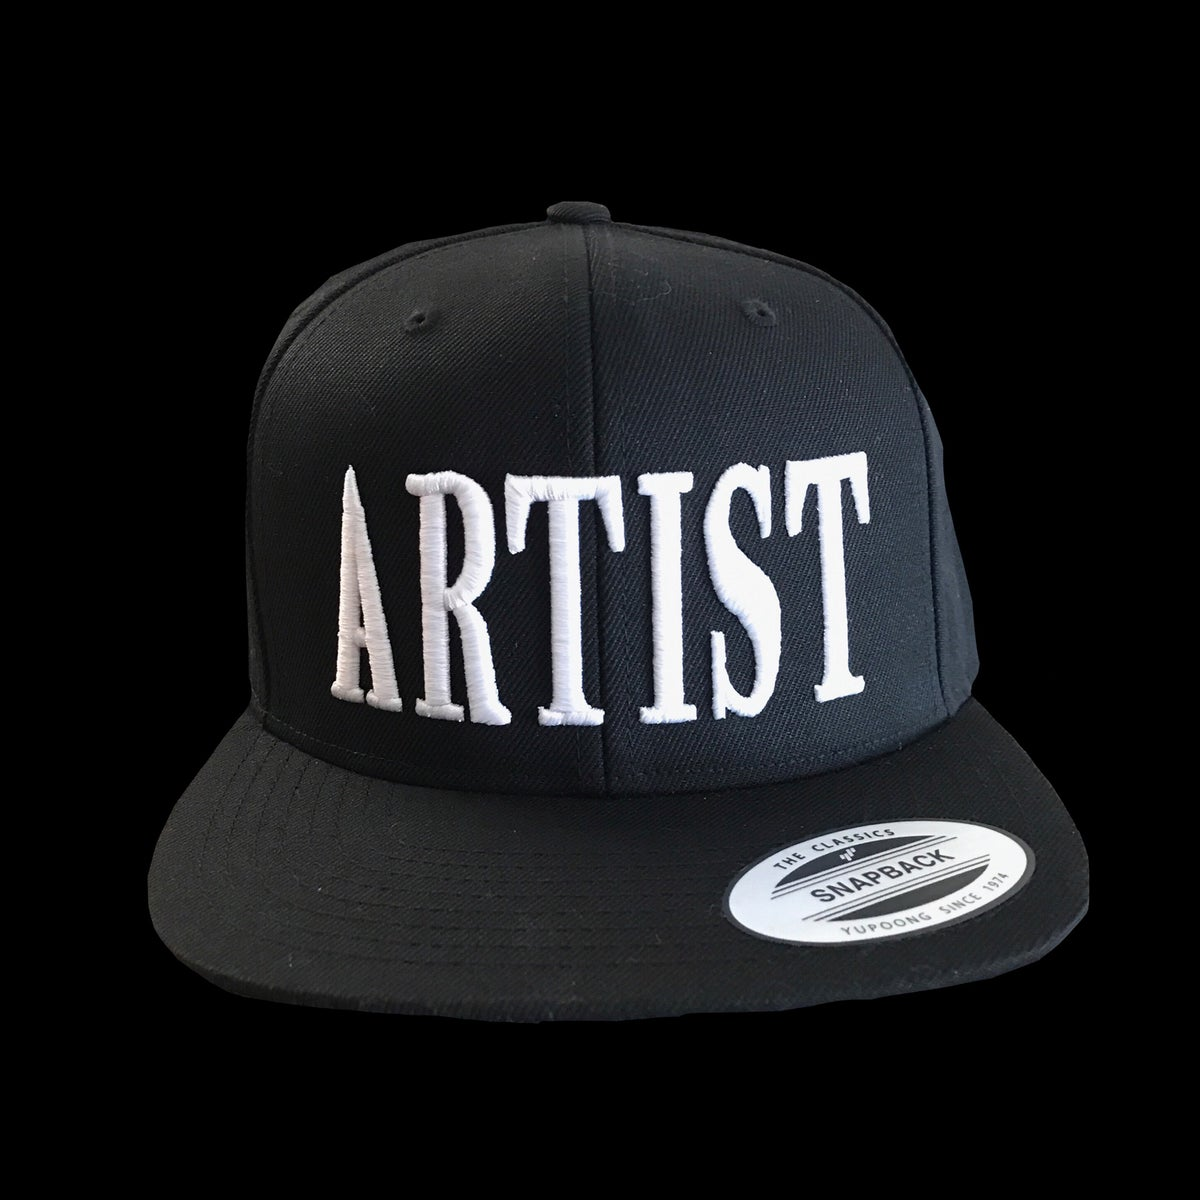 Image of Artist Hat